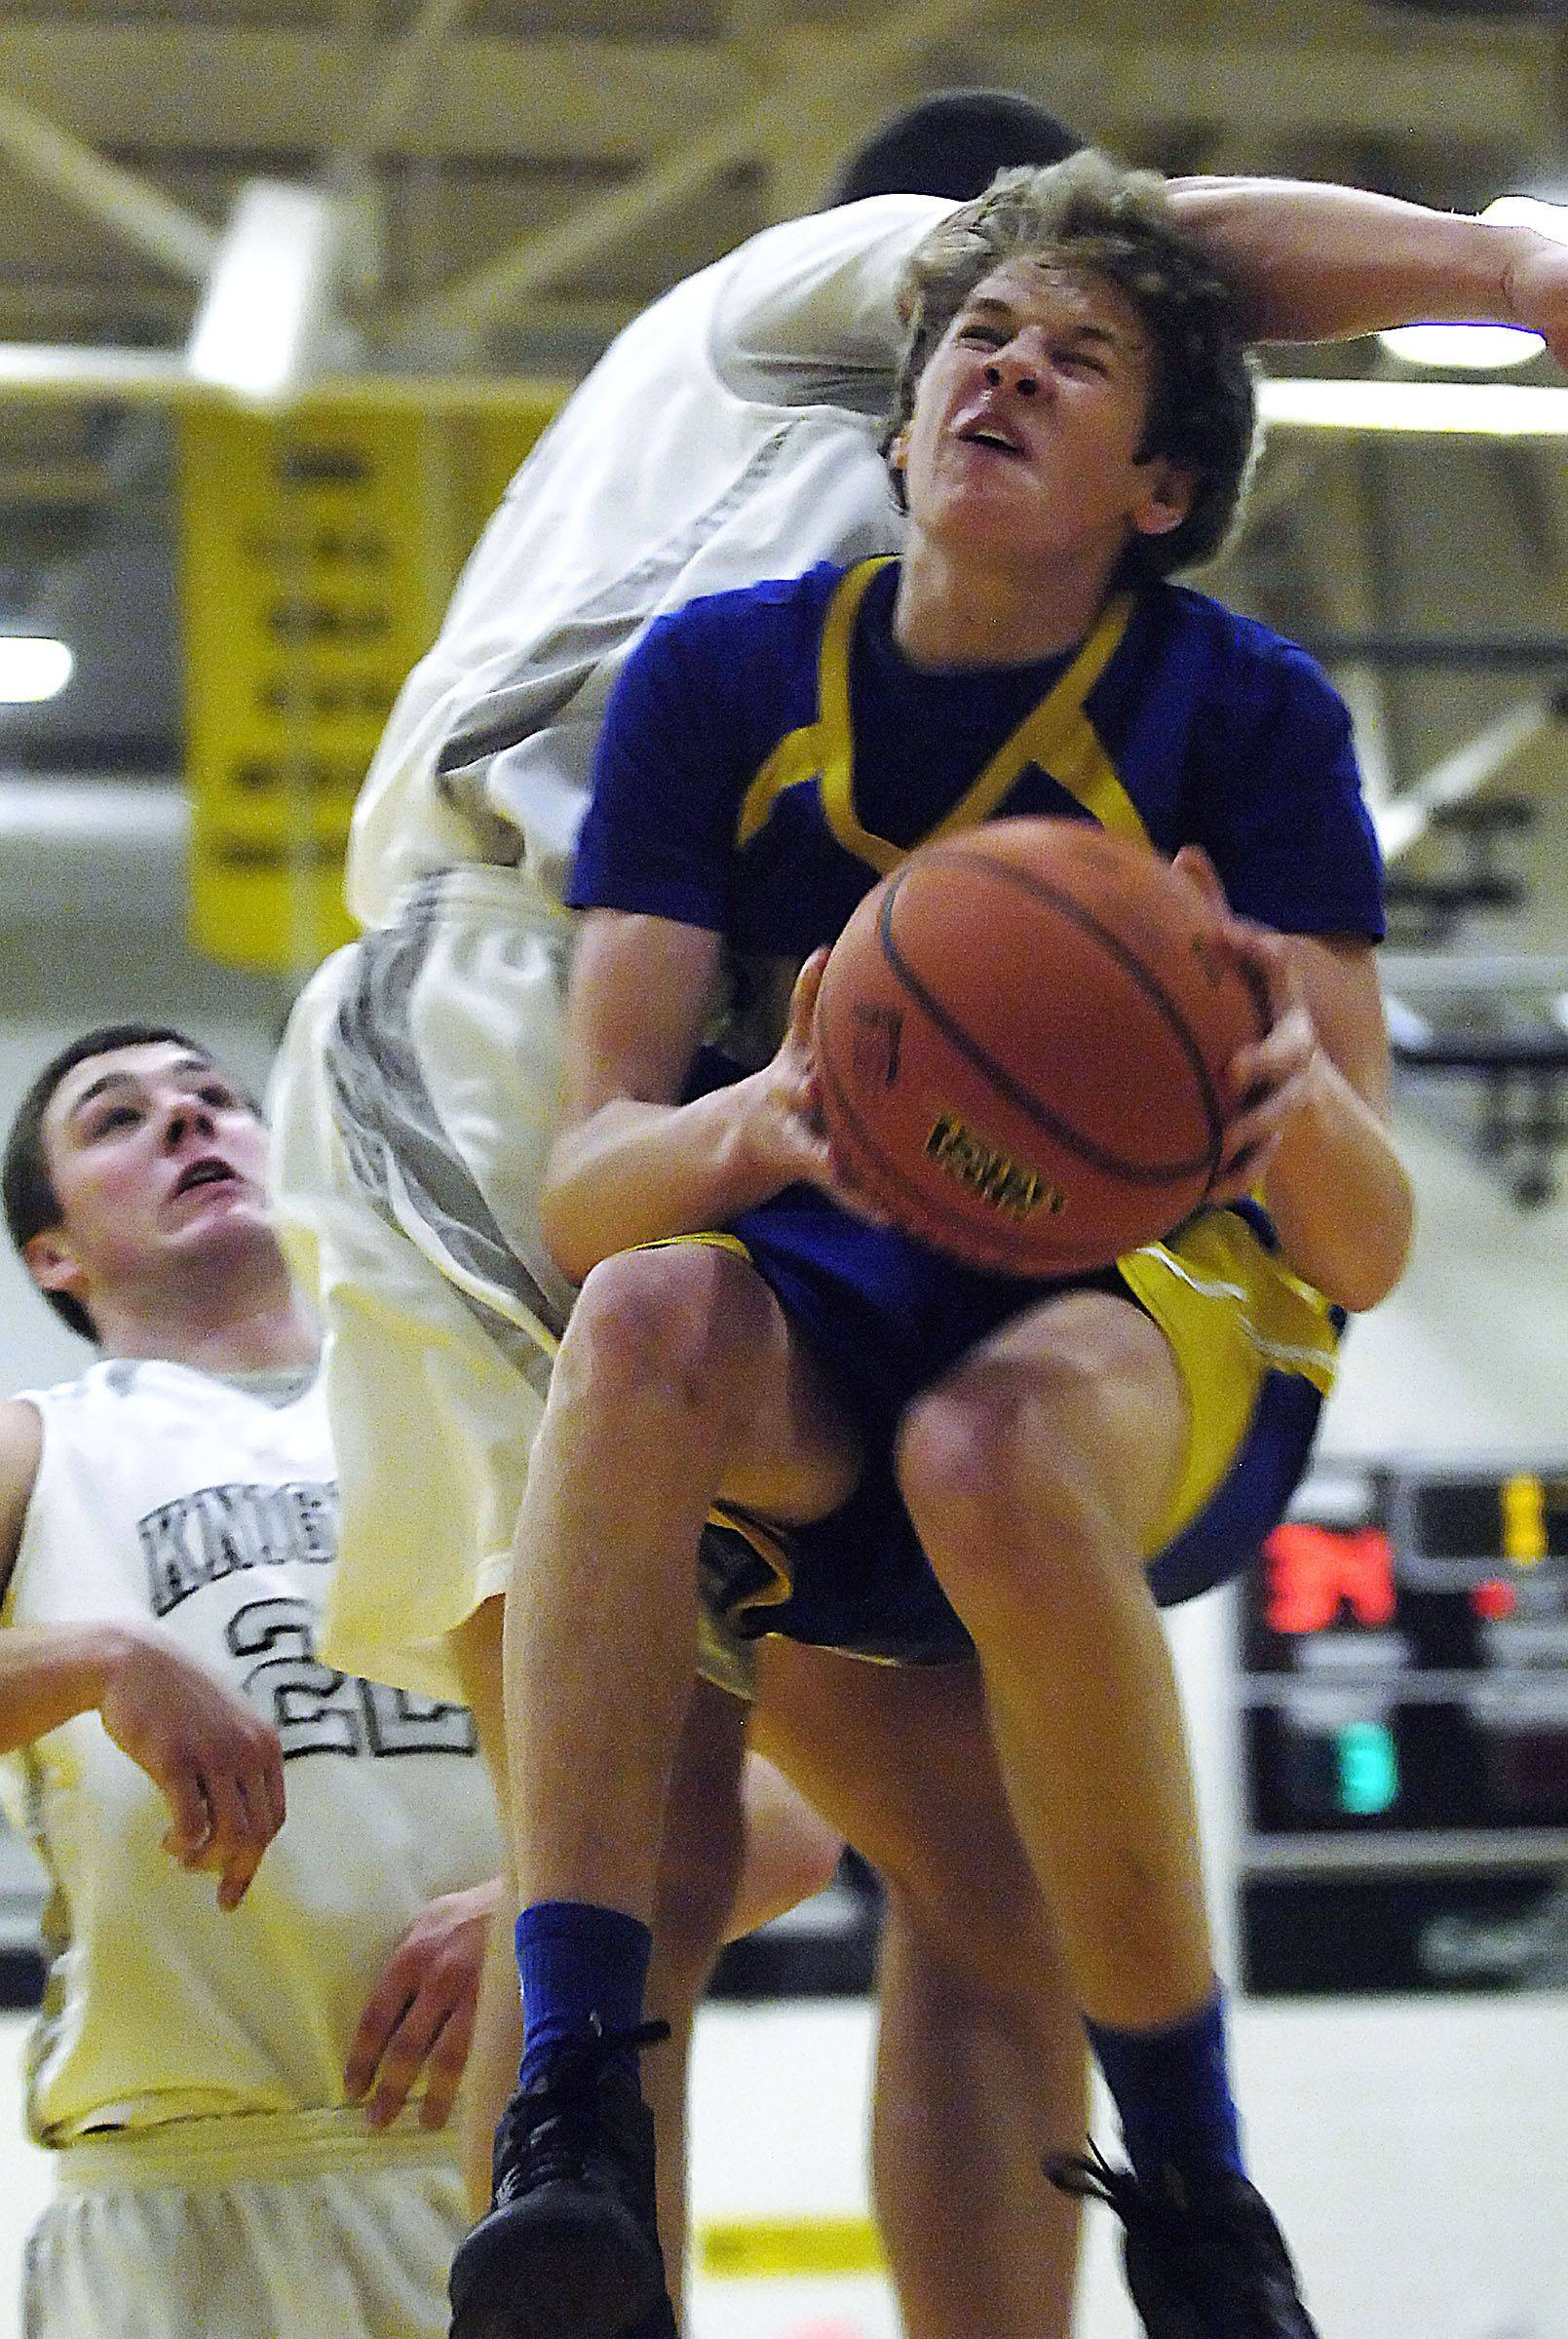 Kaneland's Daniel Helm fouls Aurora Central Catholic's Ryan Harreld as he drives to the basket Wednesday in Sycamore.